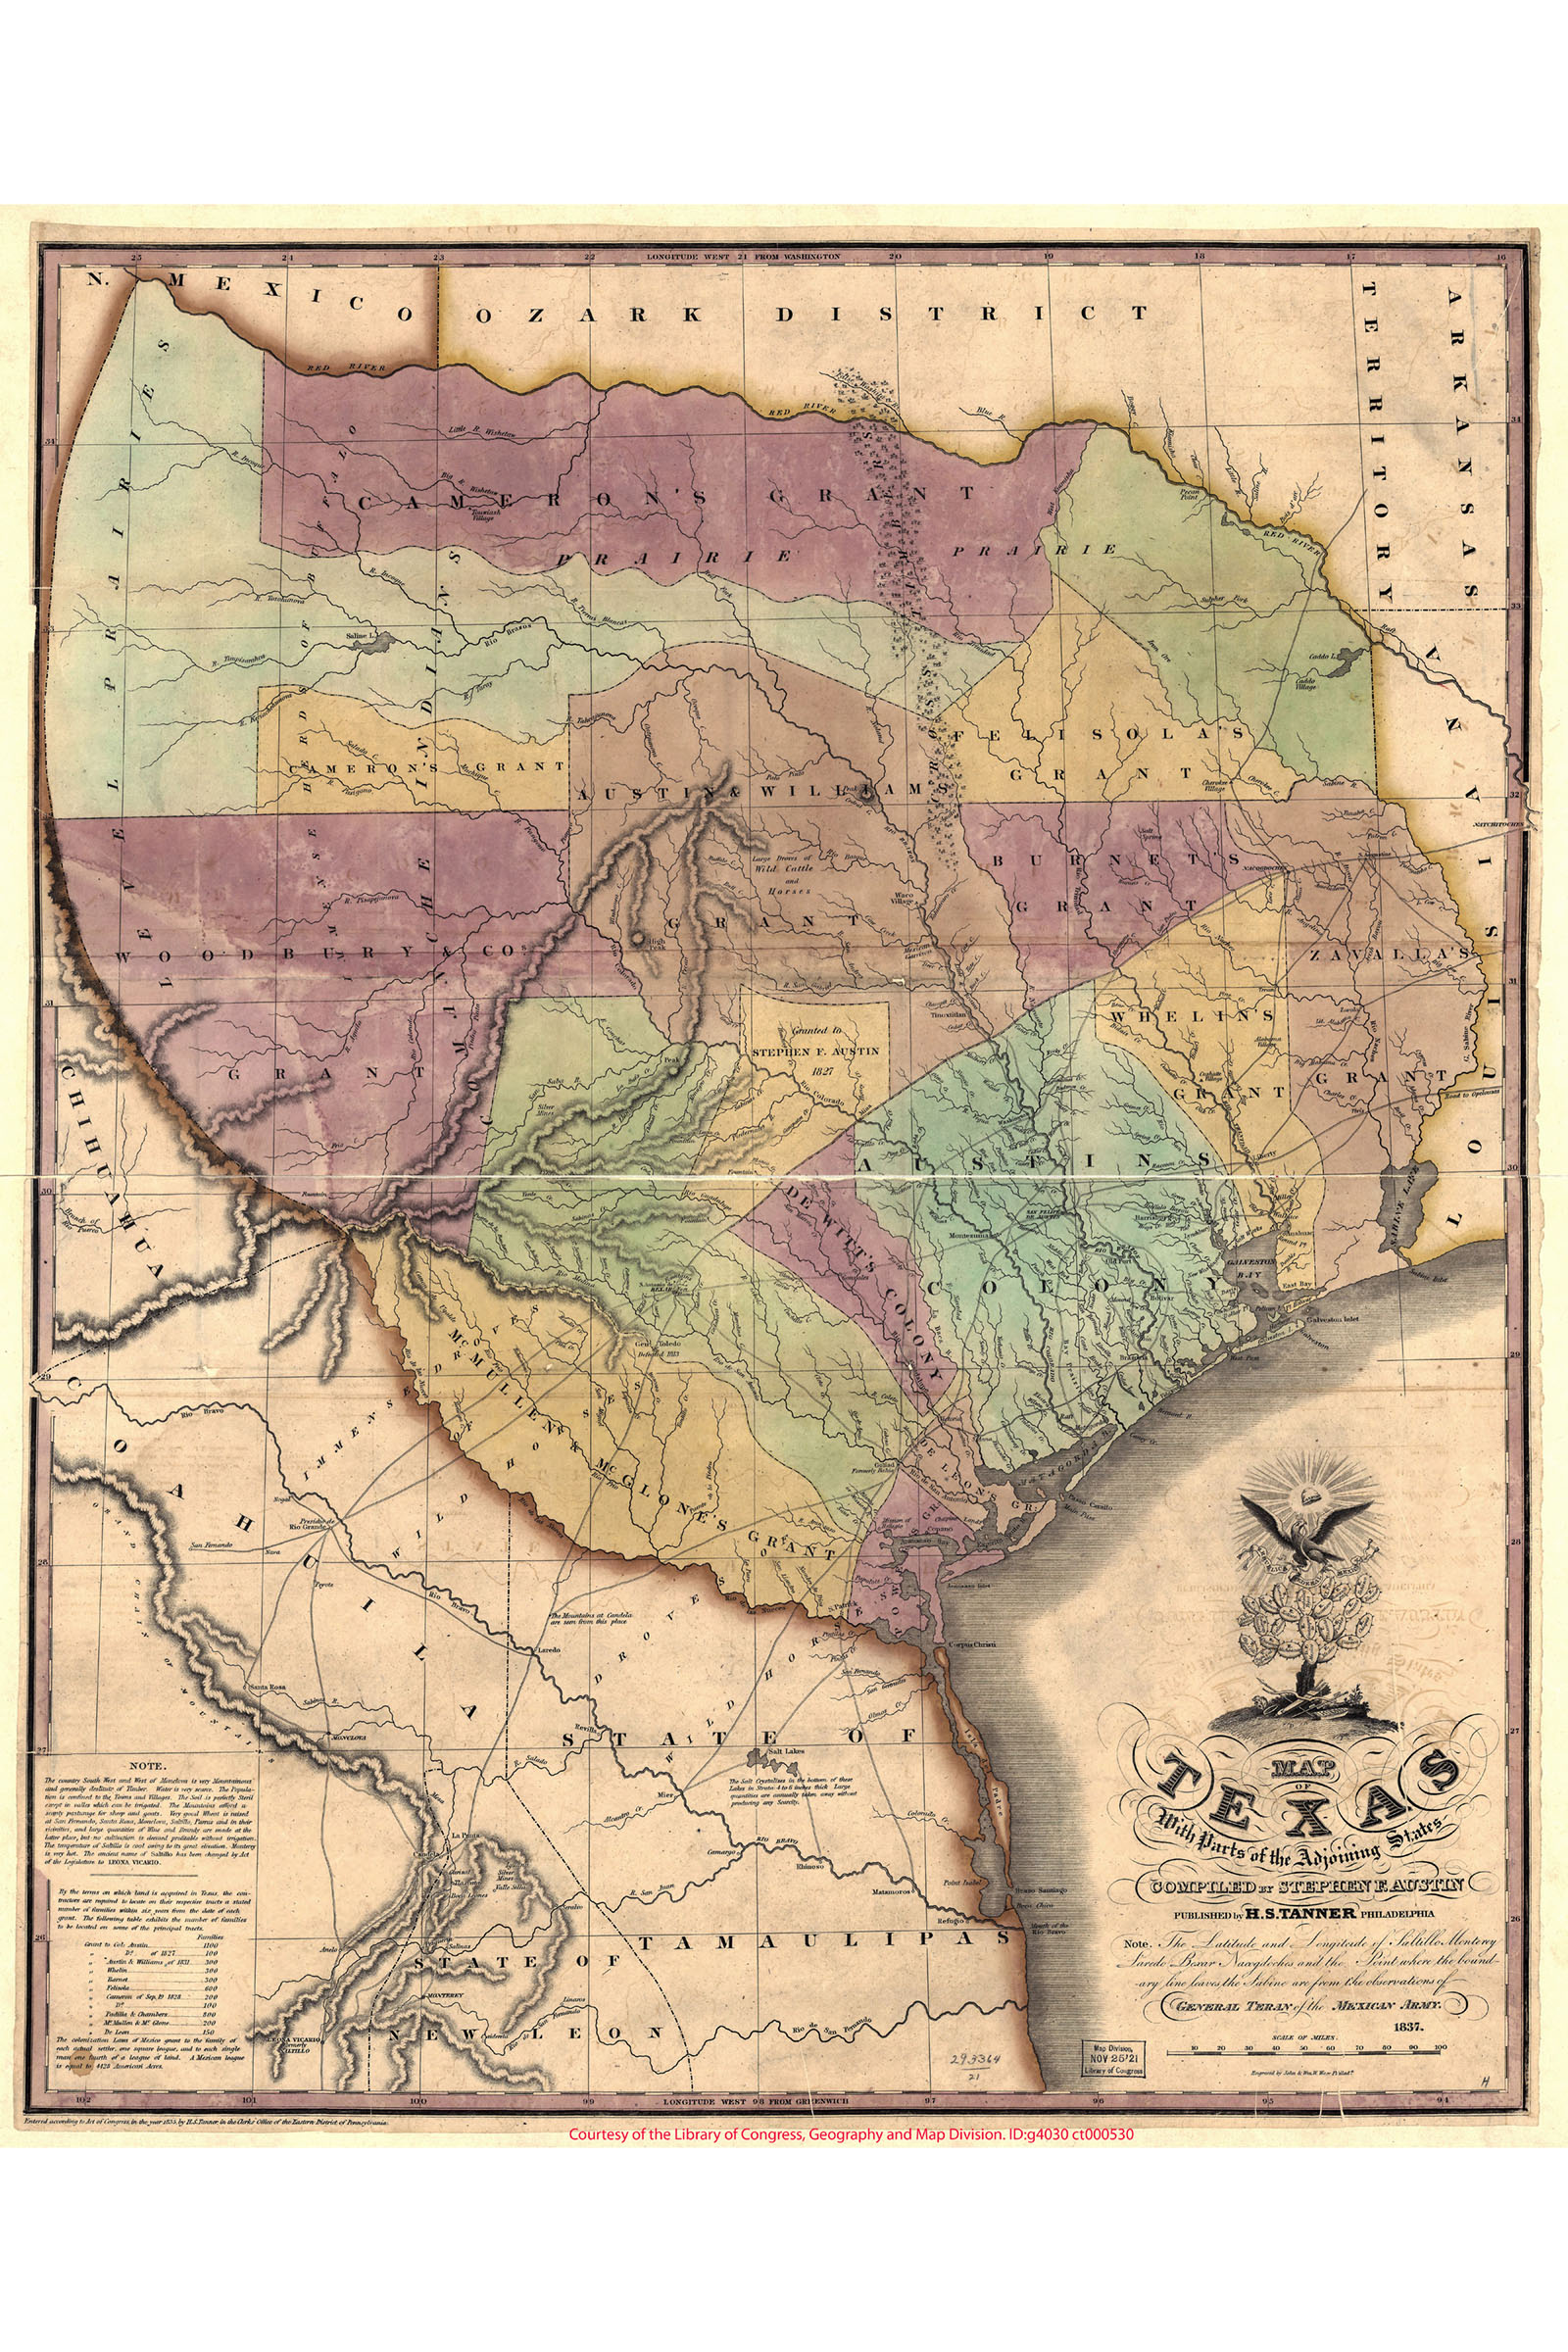 18x24 1822 Topographical Map of Texas Territory by Stephen F Austin